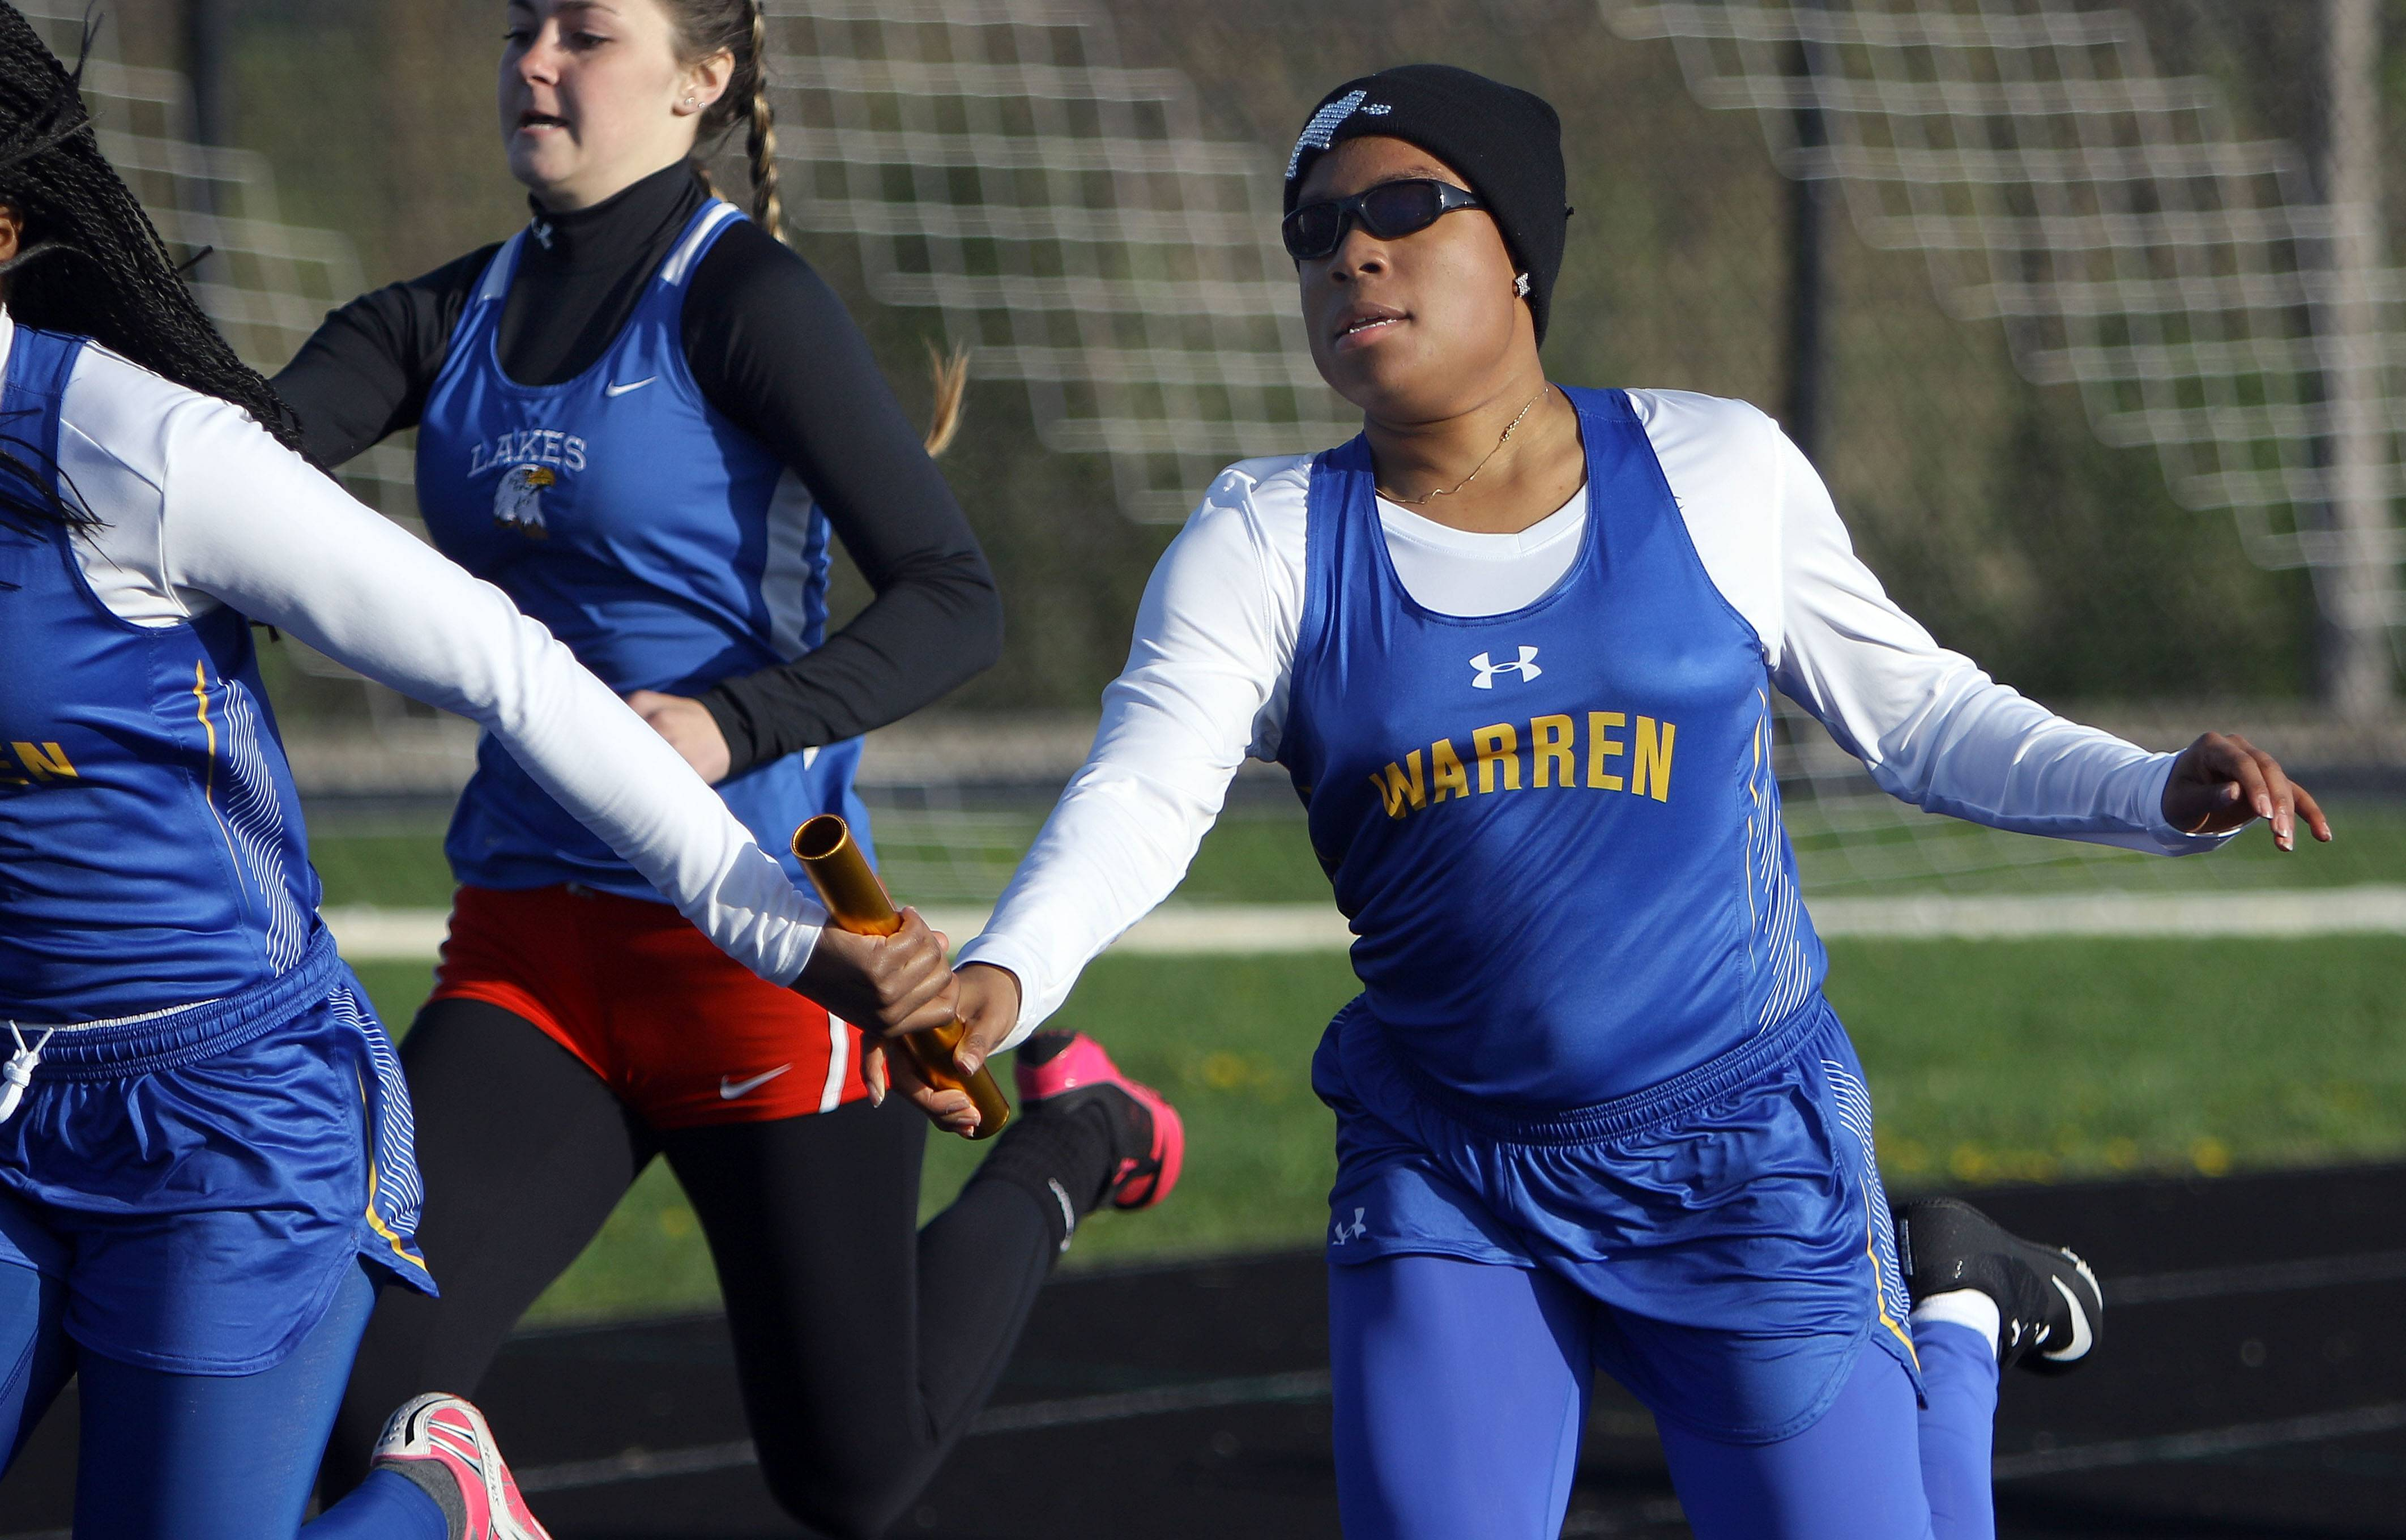 Warren's Jasmine Ward, right, hands the baton to Ciana Washington during the Lake County meet Friday at Grayslake North High School.